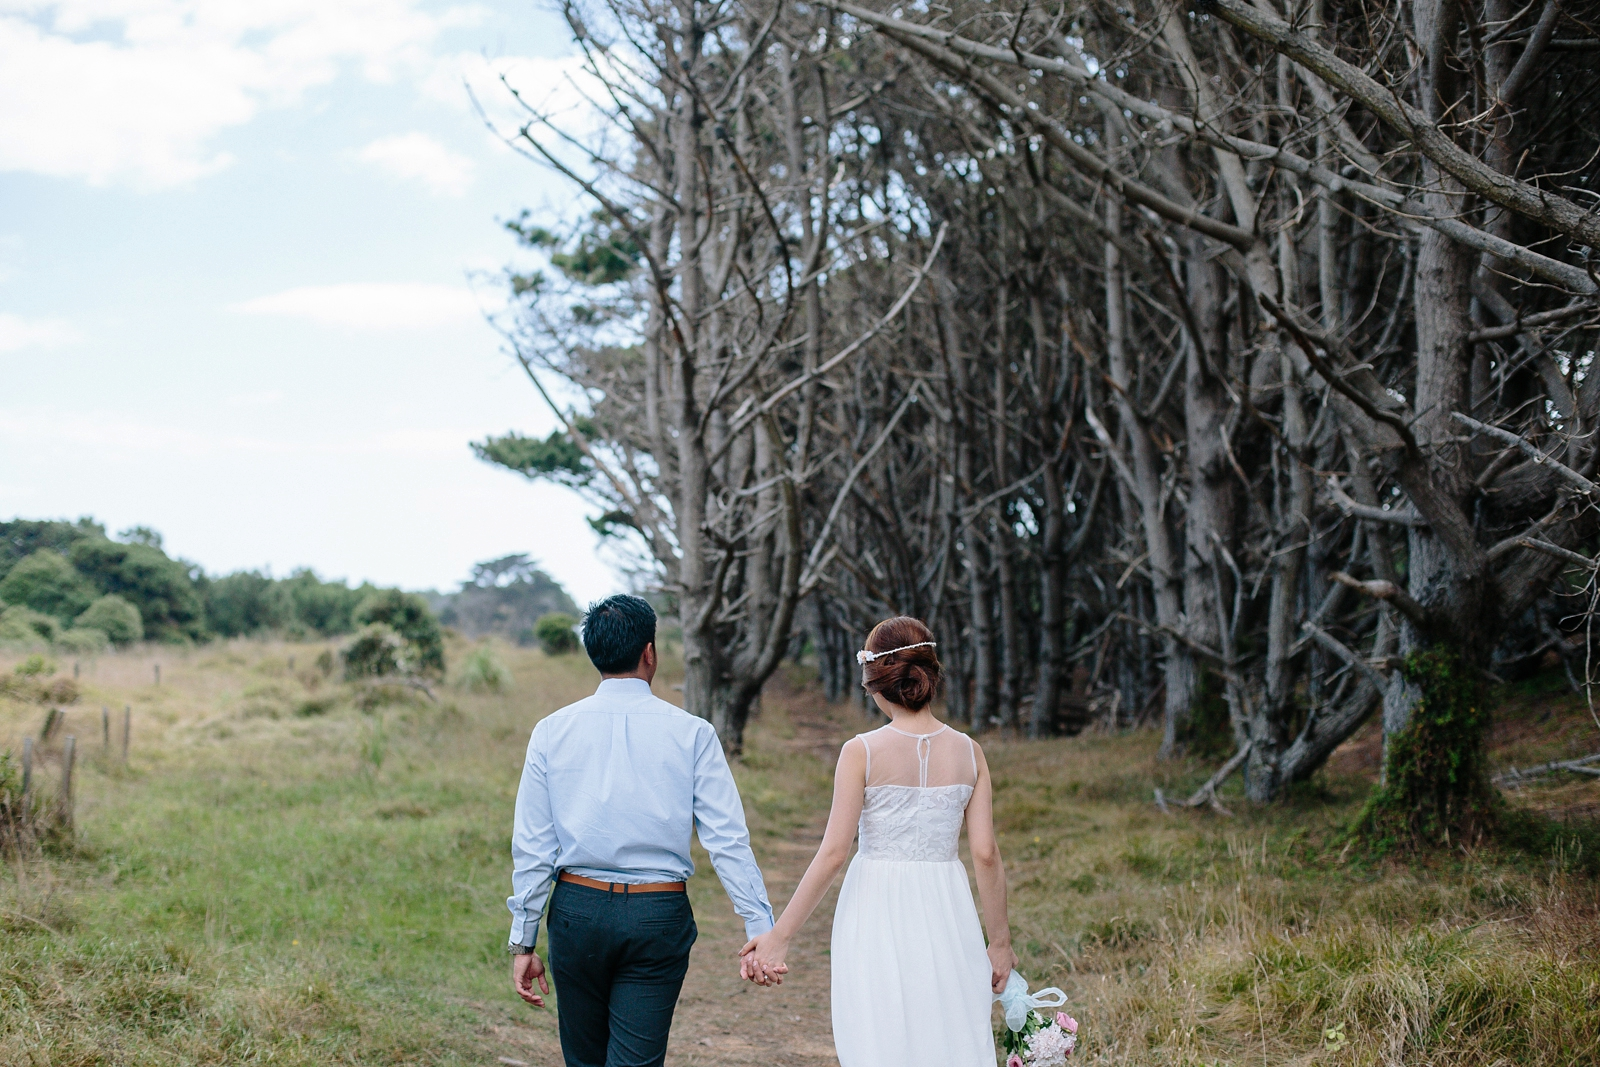 RamGia_Auckland Wedding Photographer_Patty Lagera_0056.jpg